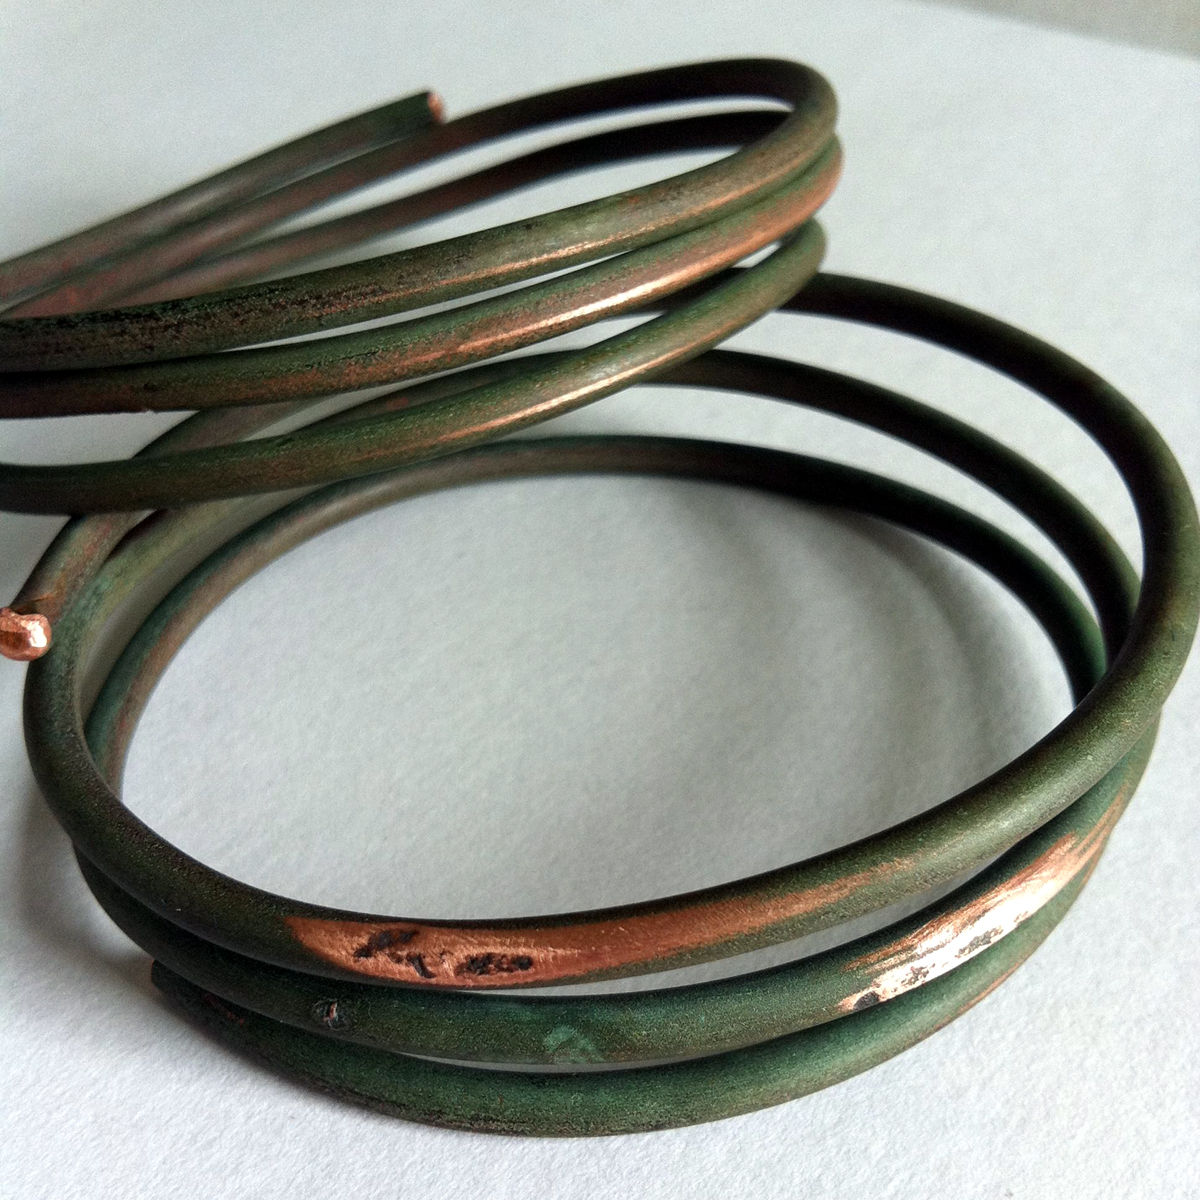 Encircled 3 Unisex Upcycled Eco-Friendly Vintage Copper Wire ...